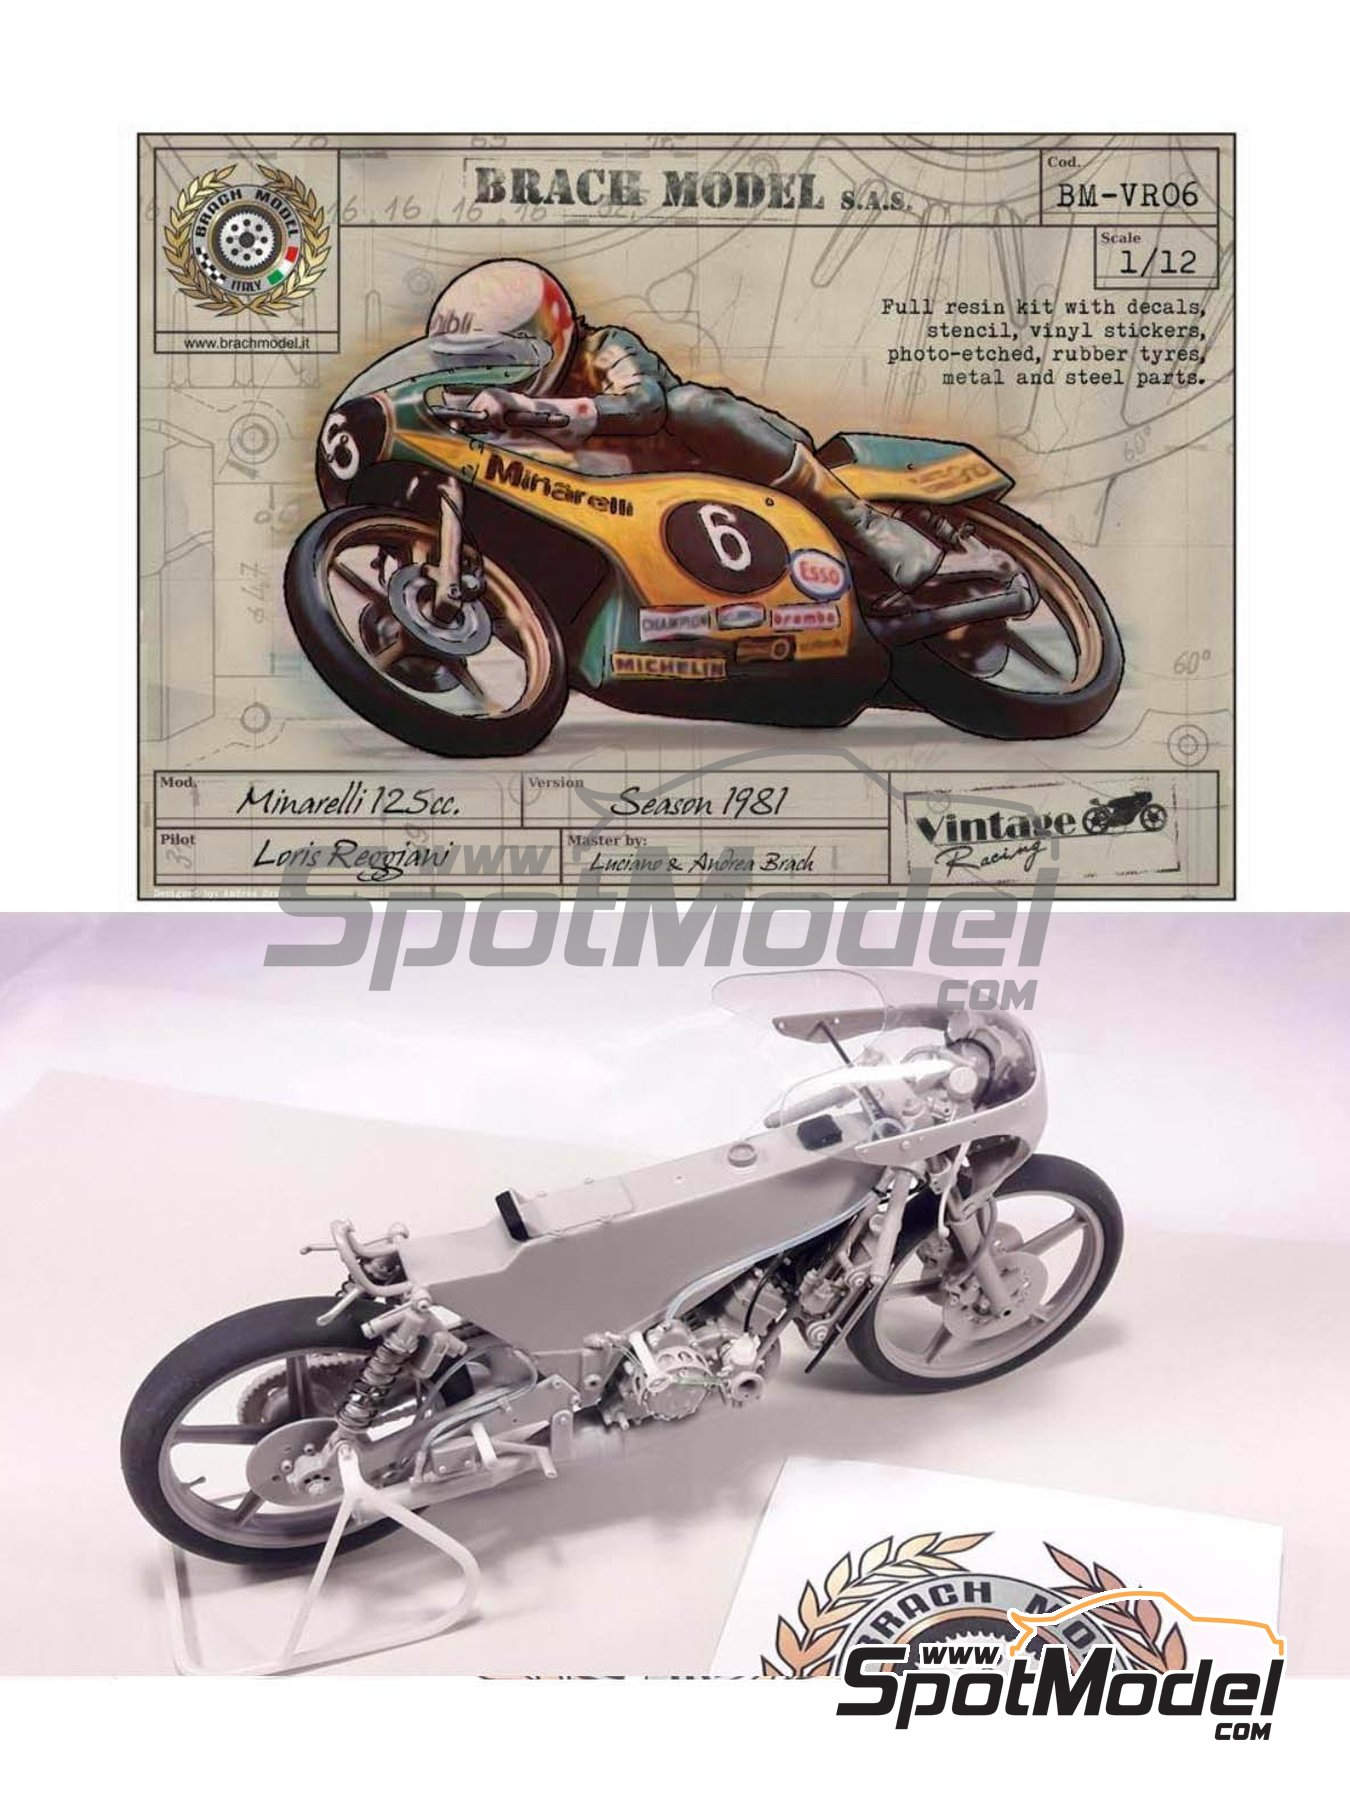 Minarelli 125cc - Motorcycle World Championship 1981 | Model bike kit in 1/12 scale manufactured by Brach Model (ref. BM-VR06) image